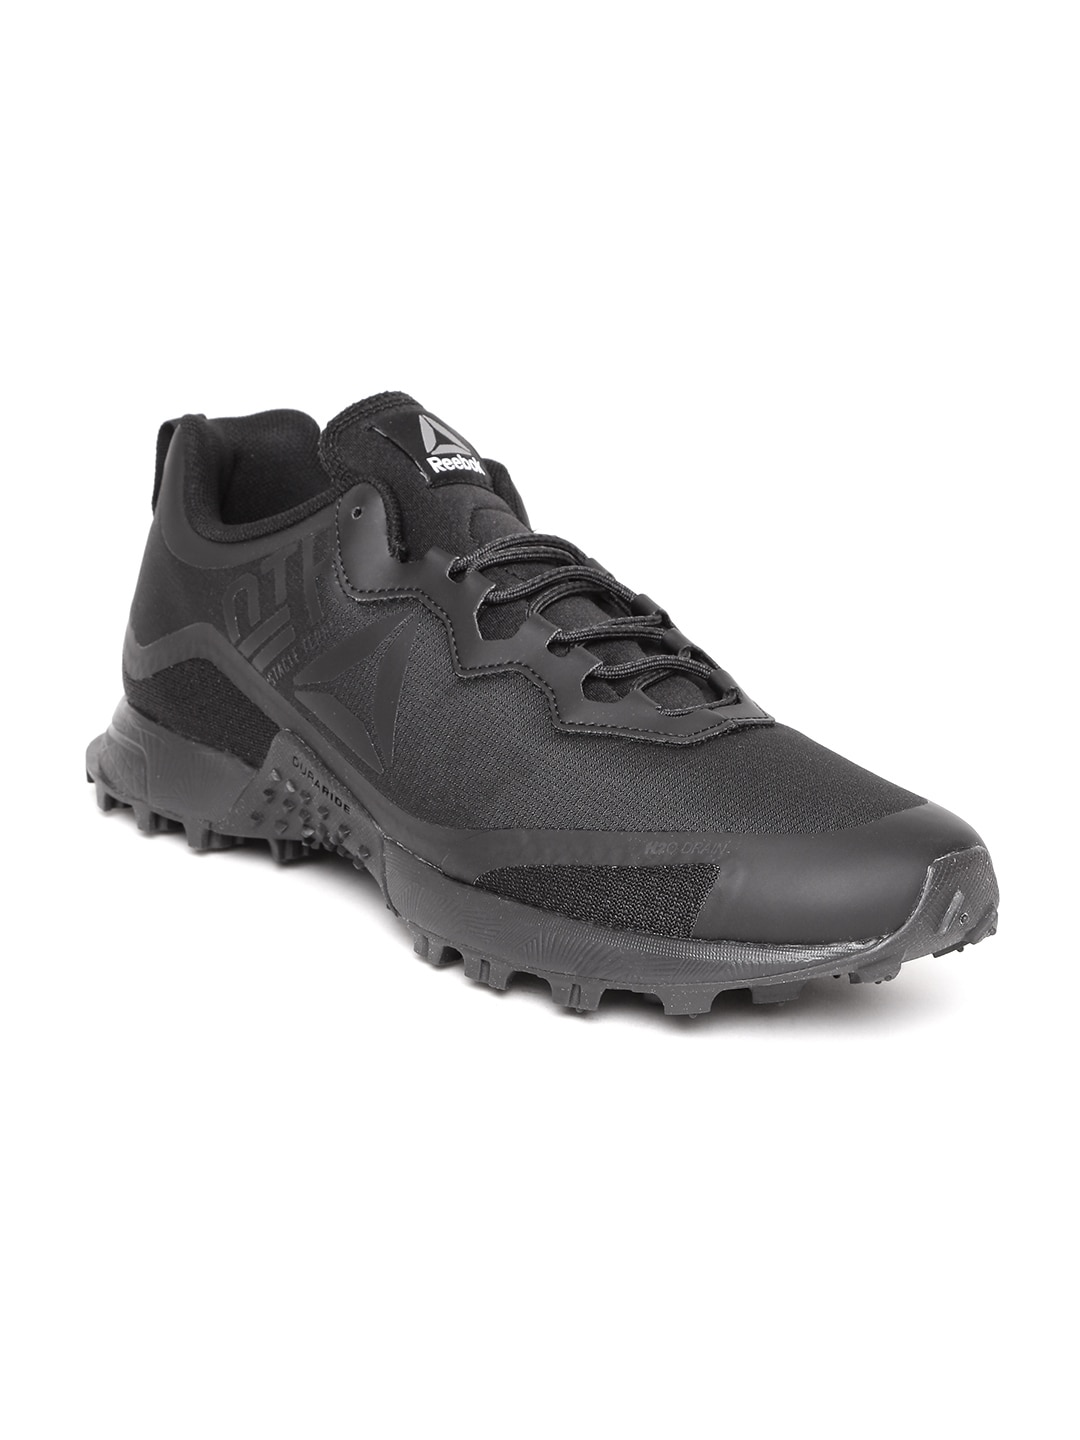 Reebok Black Shoes - Buy Reebok Black Shoes Online in India a7a68b89f